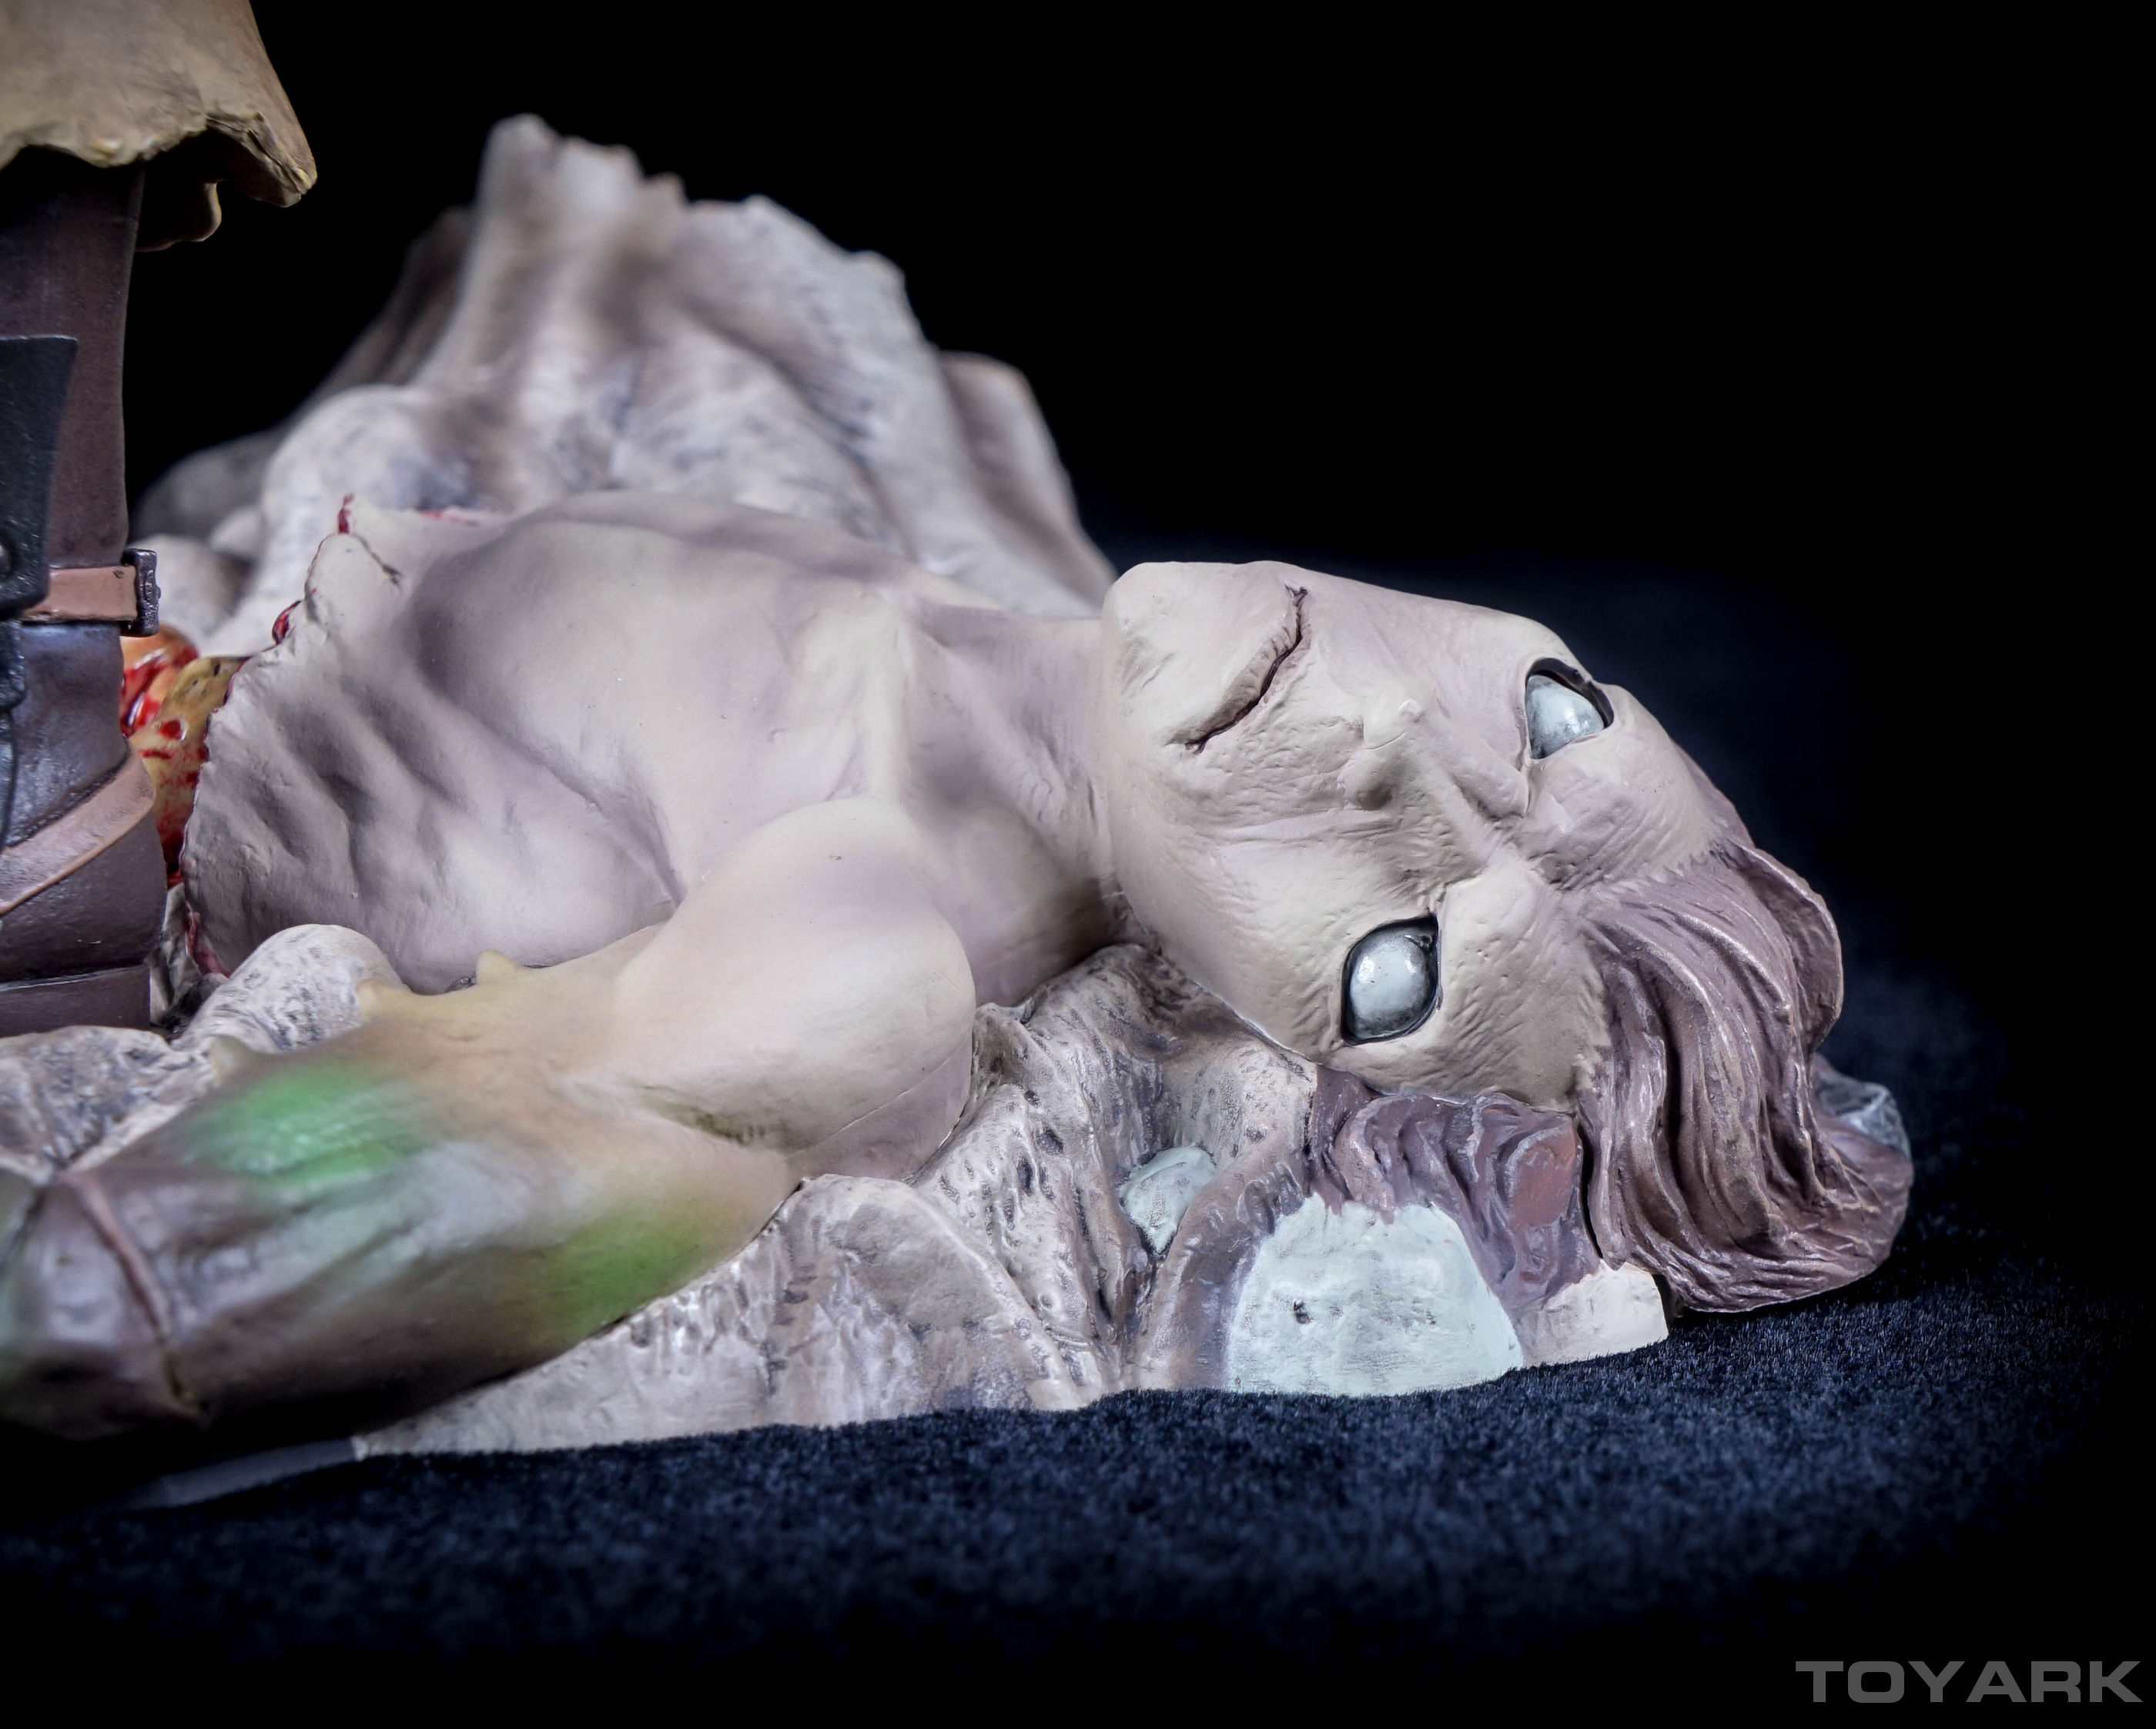 http://news.toyark.com/wp-content/uploads/sites/4/2015/11/Berserk-Guts-Statue-035.jpg